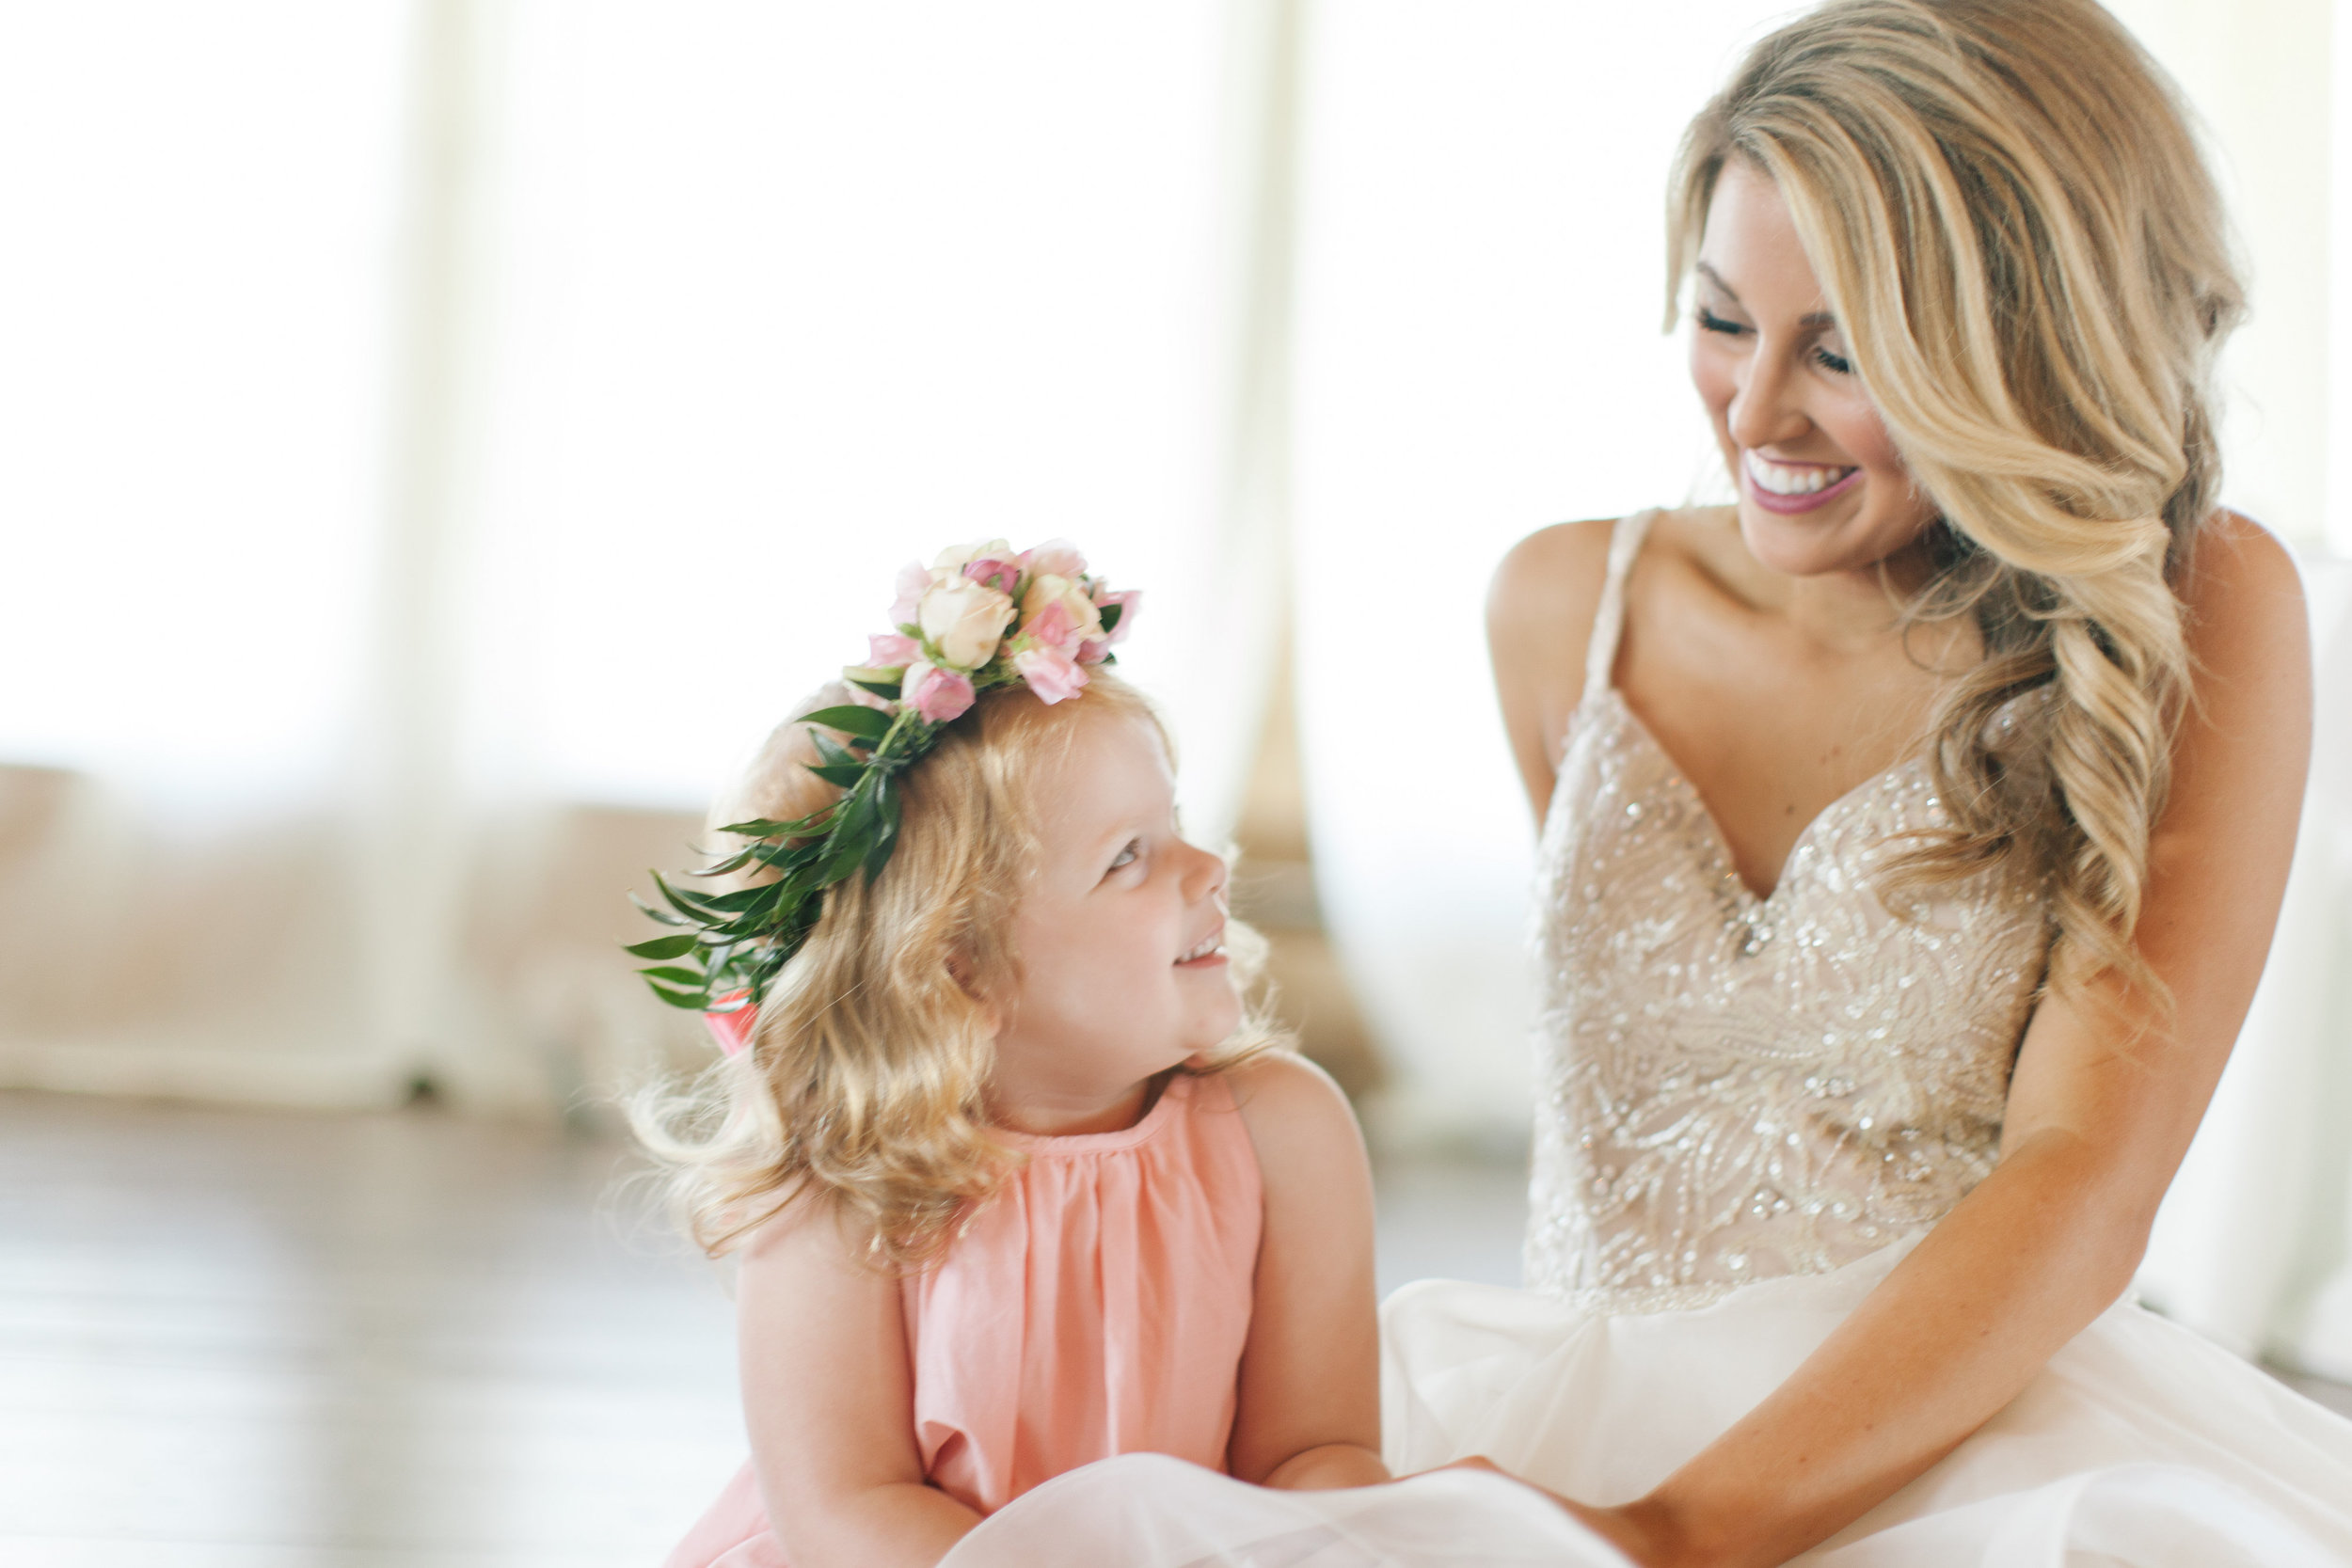 Bliss OKC | Melanie Foster | Sweet Peach Styled Shoot Bride and Flower Girl; Flower Crown